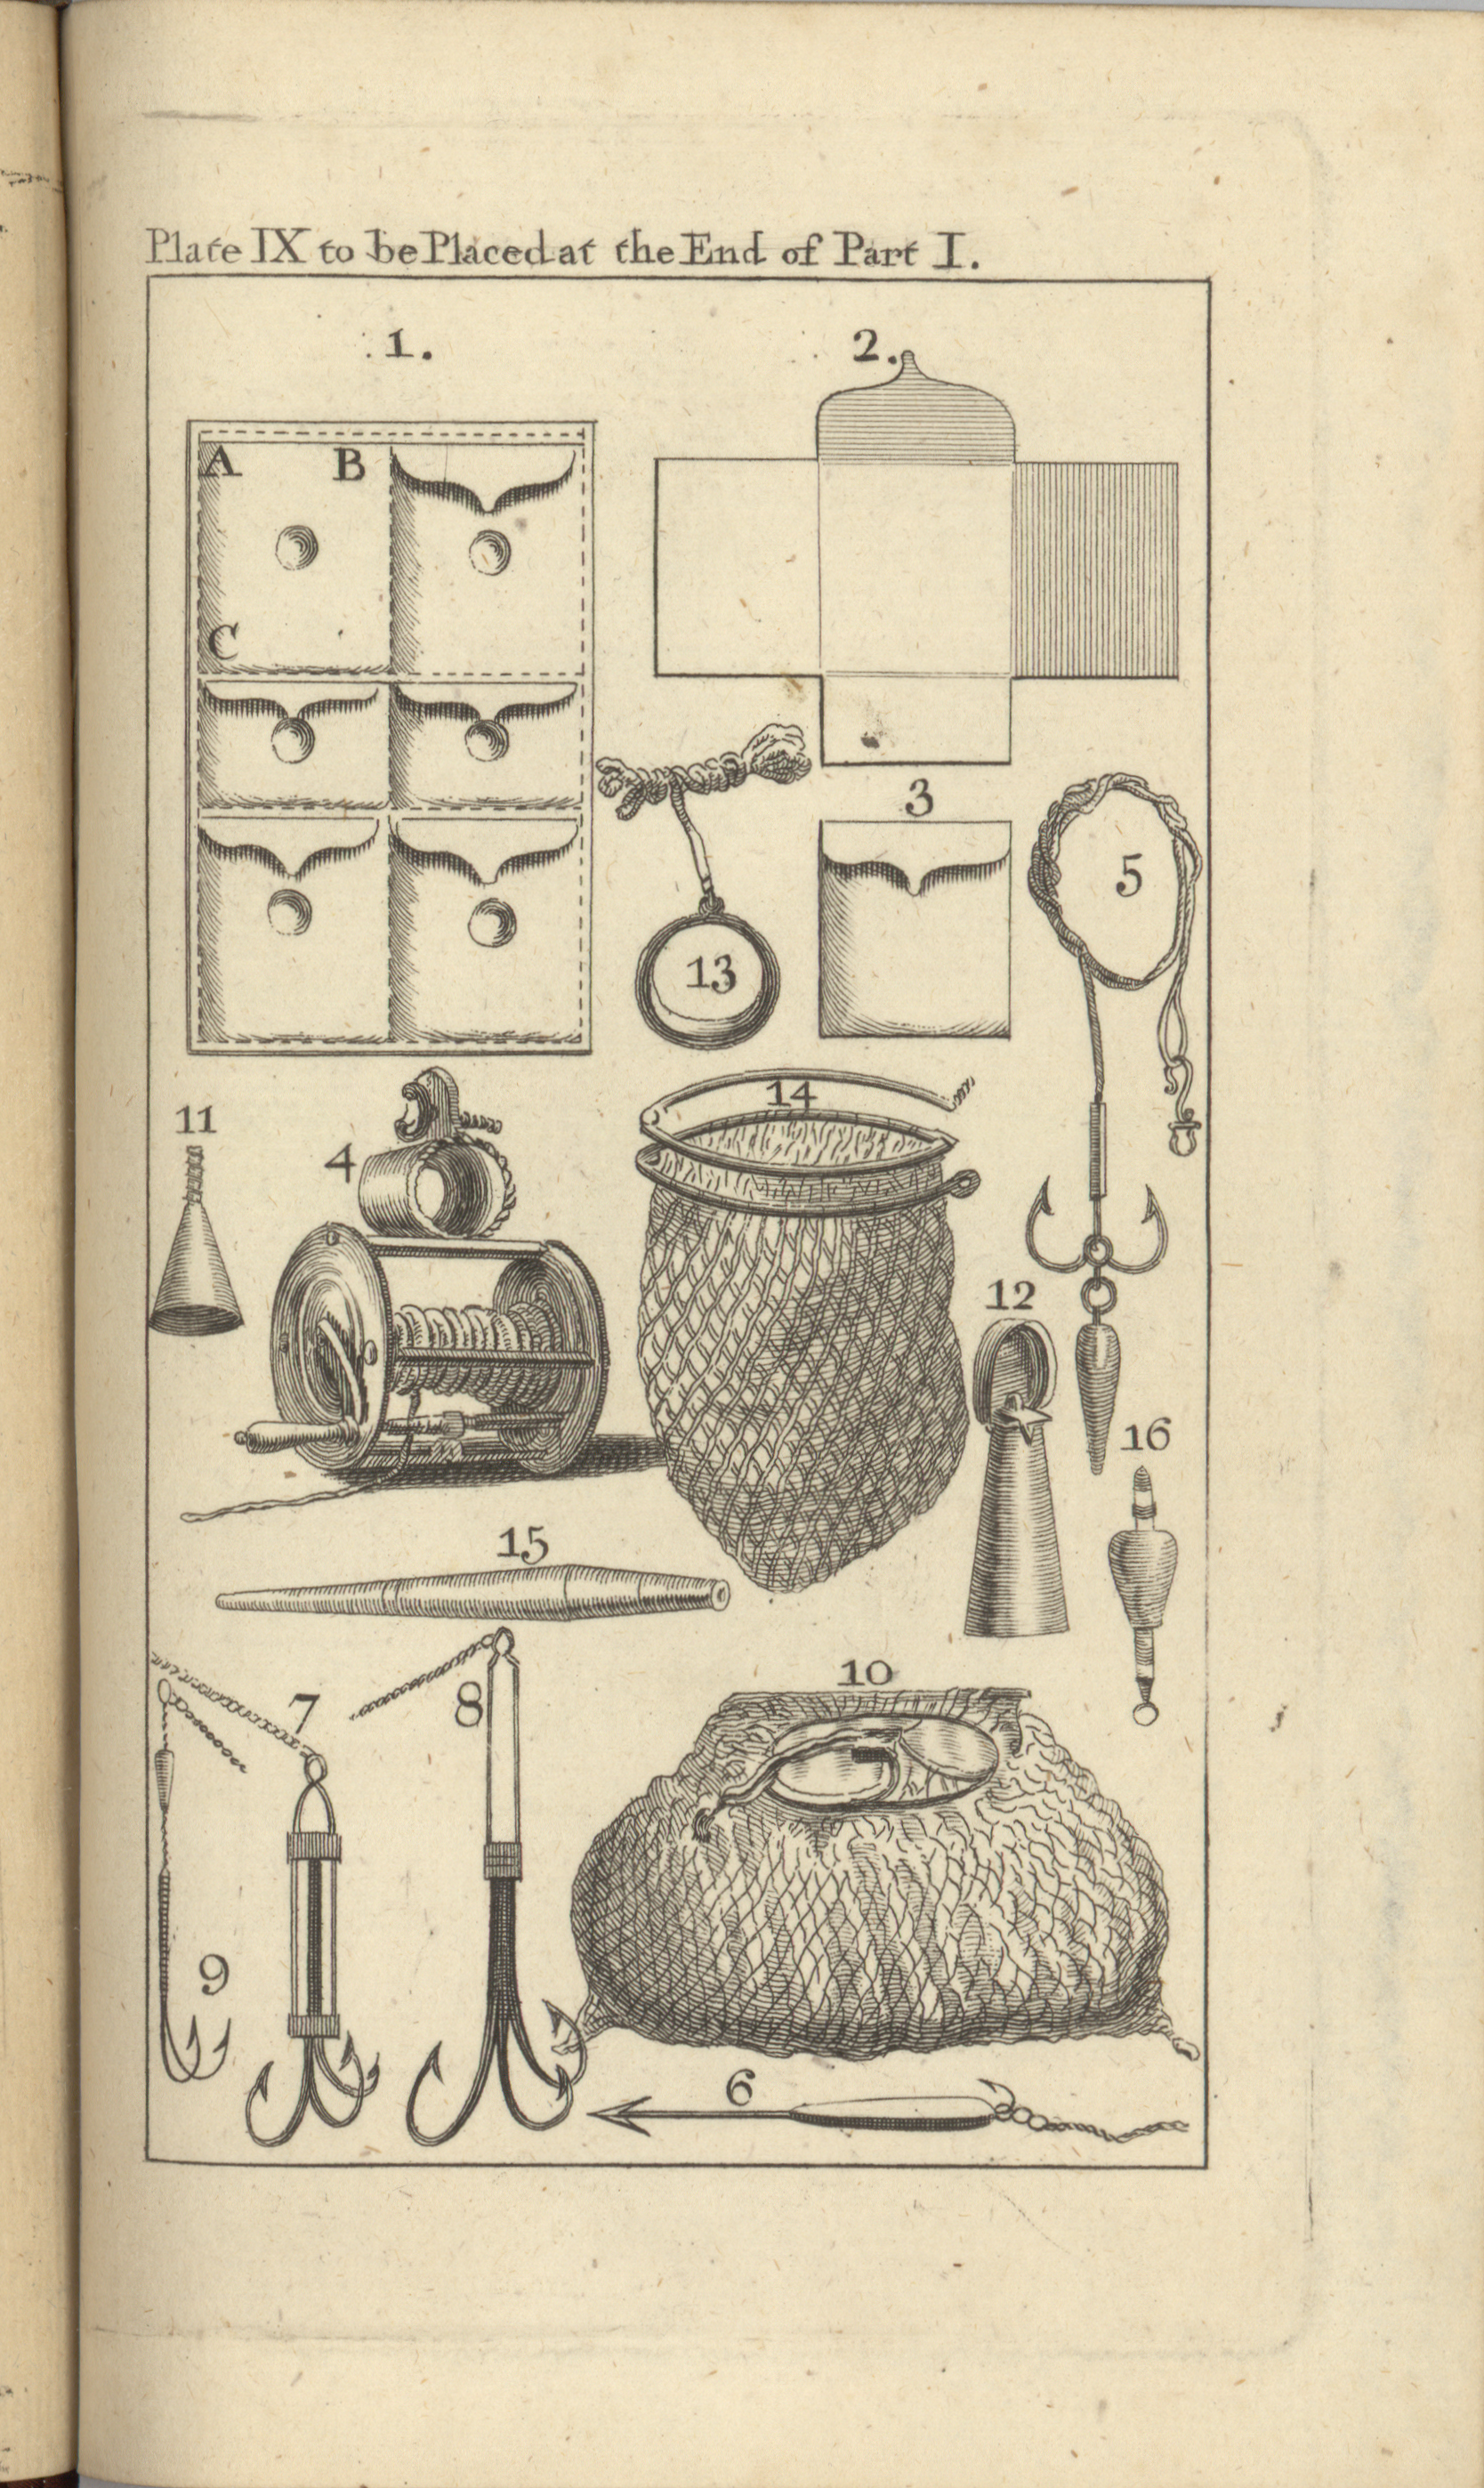 1760 Edition Diagrams of Fishing Gear